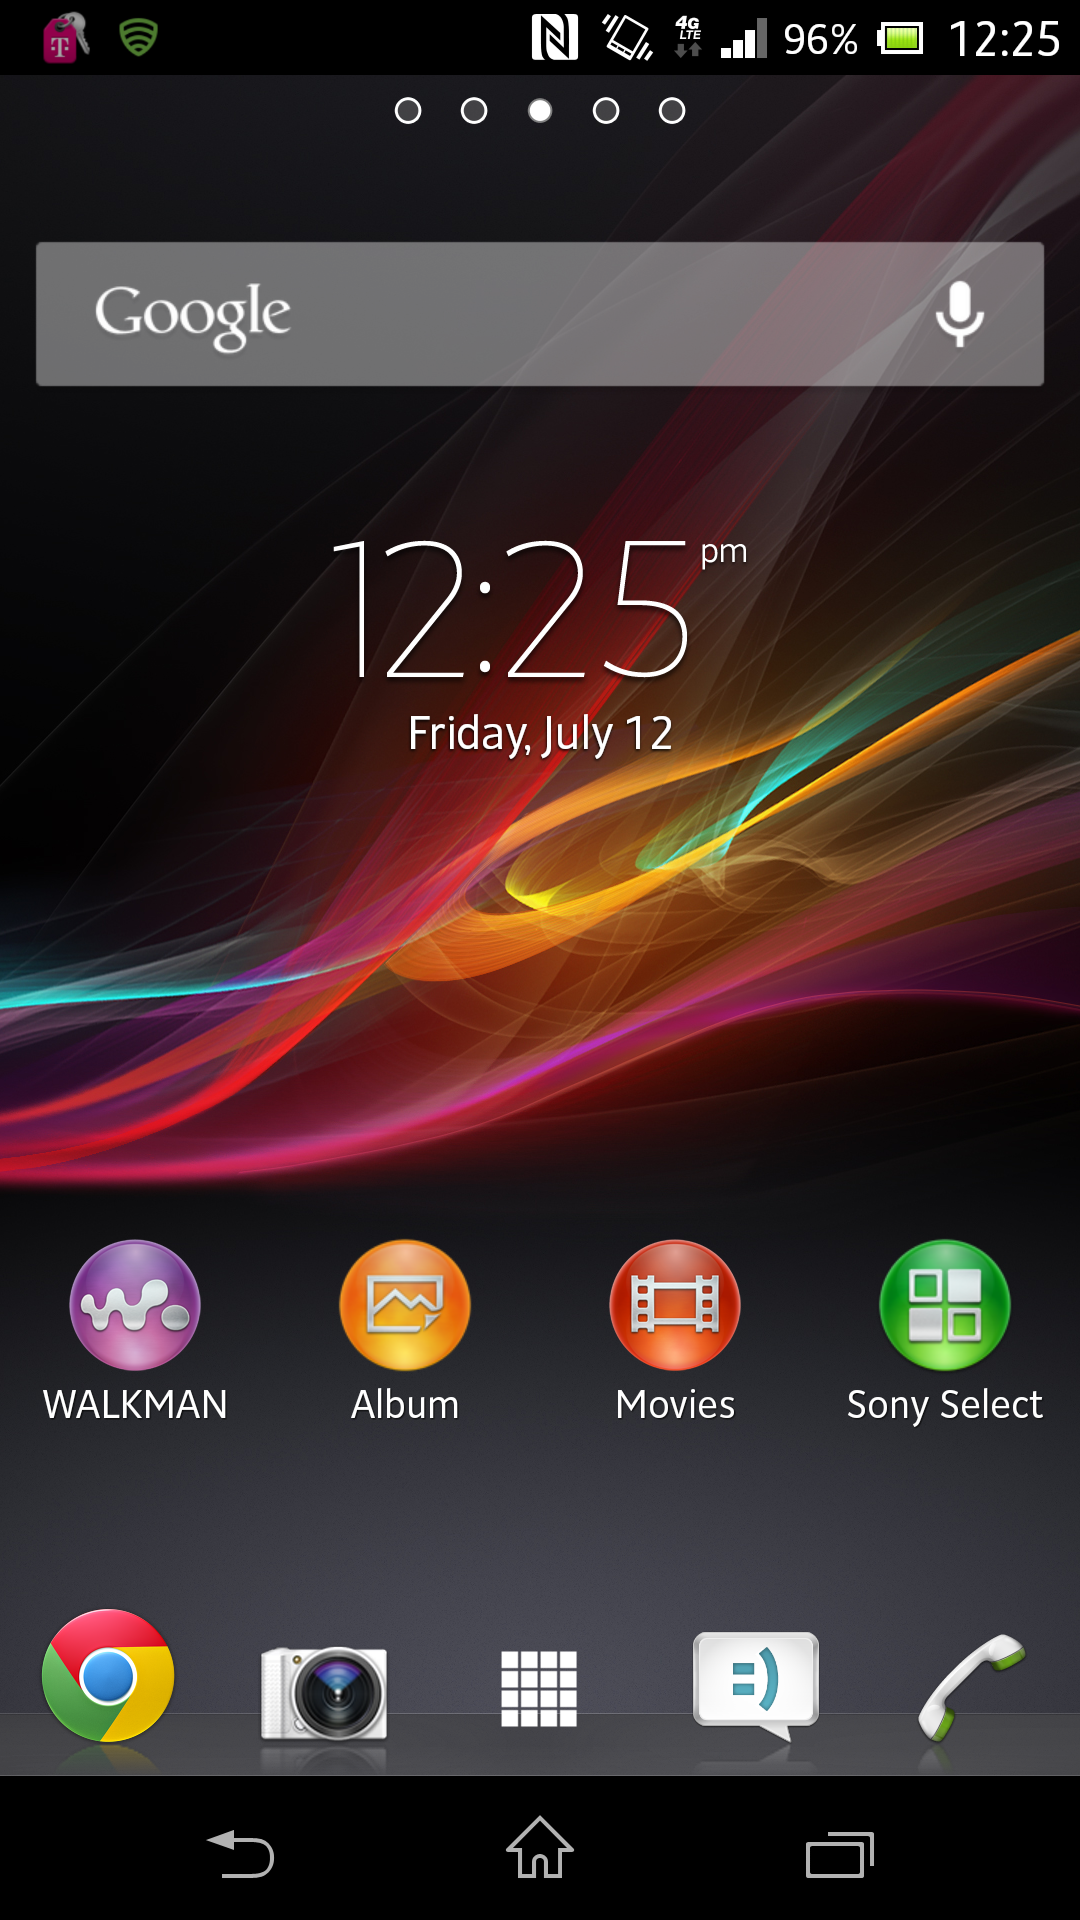 how to change the device name on a galaxy s2